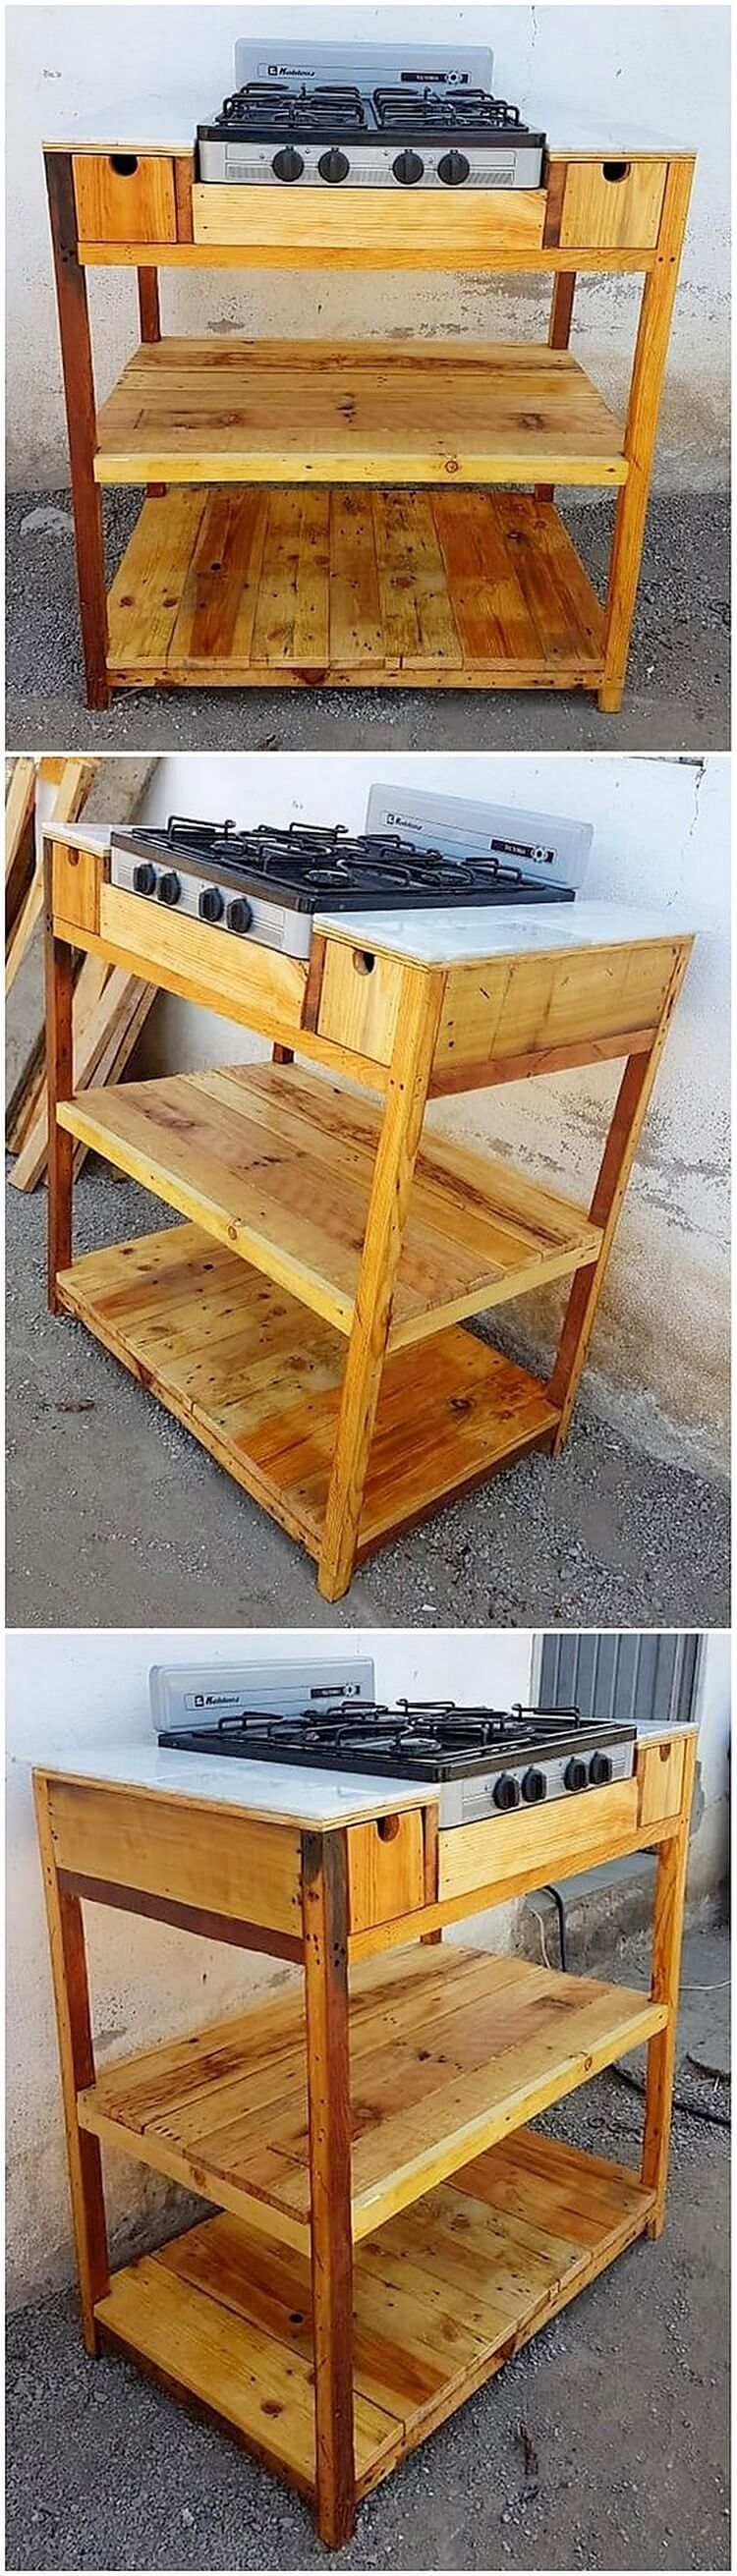 Pallet Stove Stand or Table